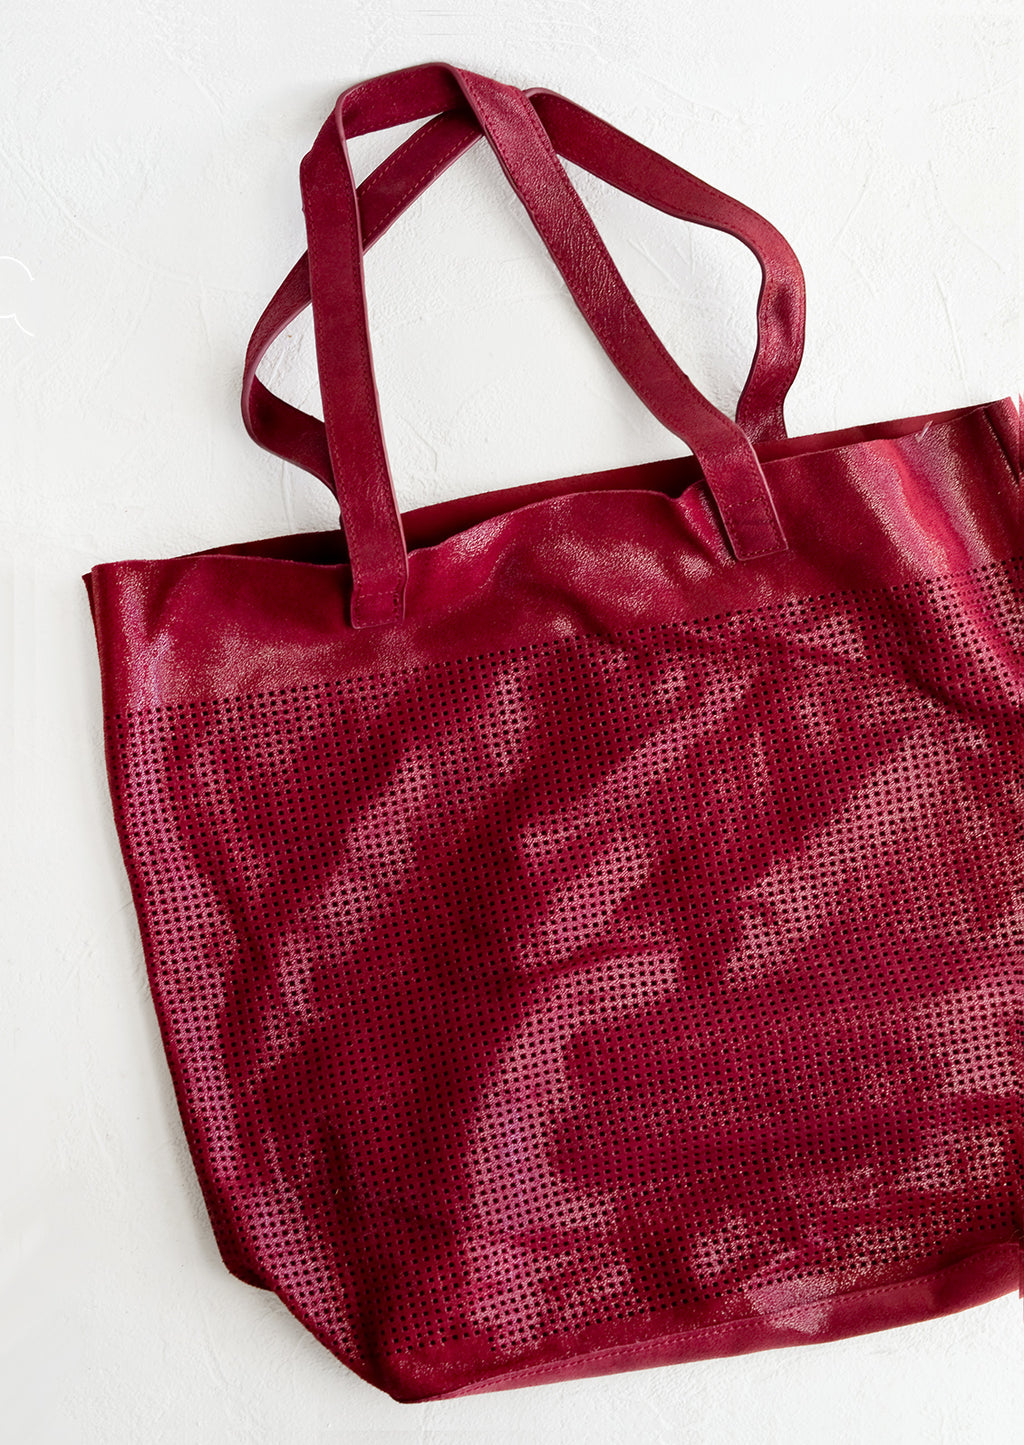 Cranberry: A tote bag made from cranberry colored shimmer leather with square perforation detailing throughout.